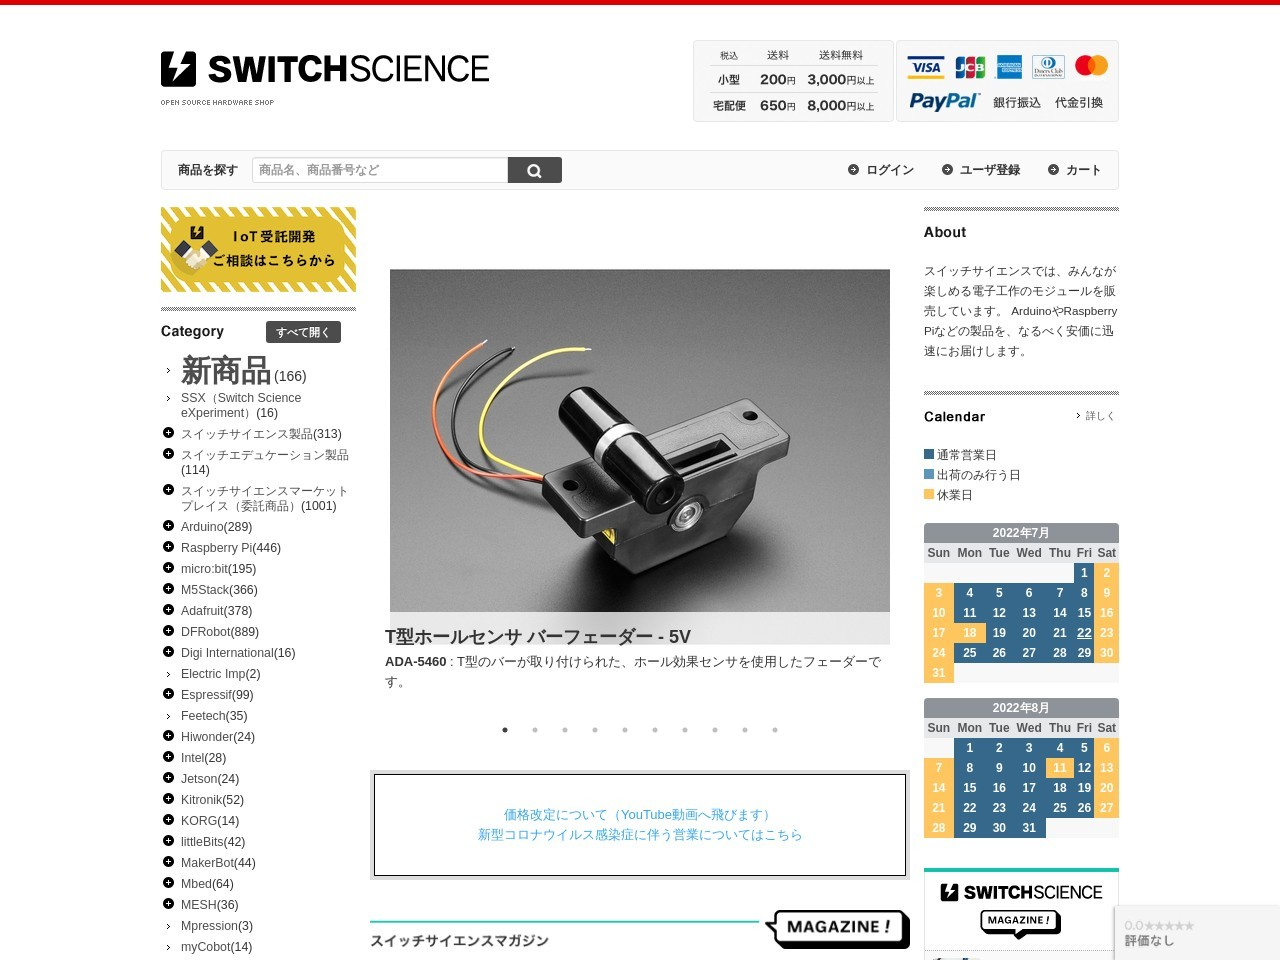 https://www.switch-science.com/catalog/list/?plu=2127,968,314,620,2294,2109,1035,2438,2282,2444